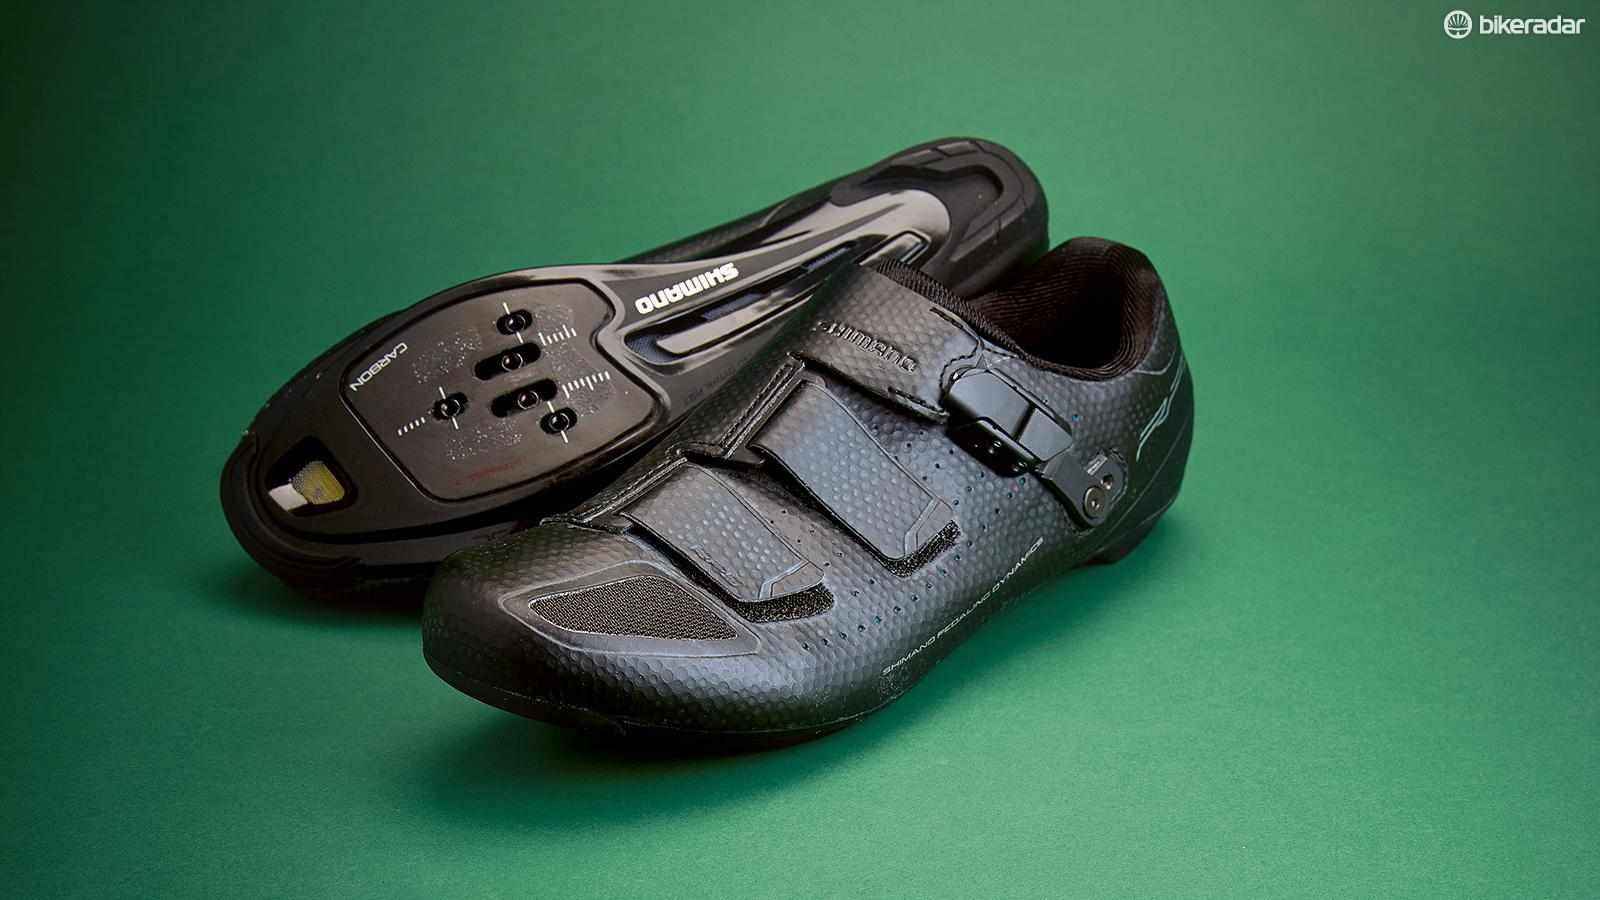 If you're suffering from foot pain, a change of footwear could help